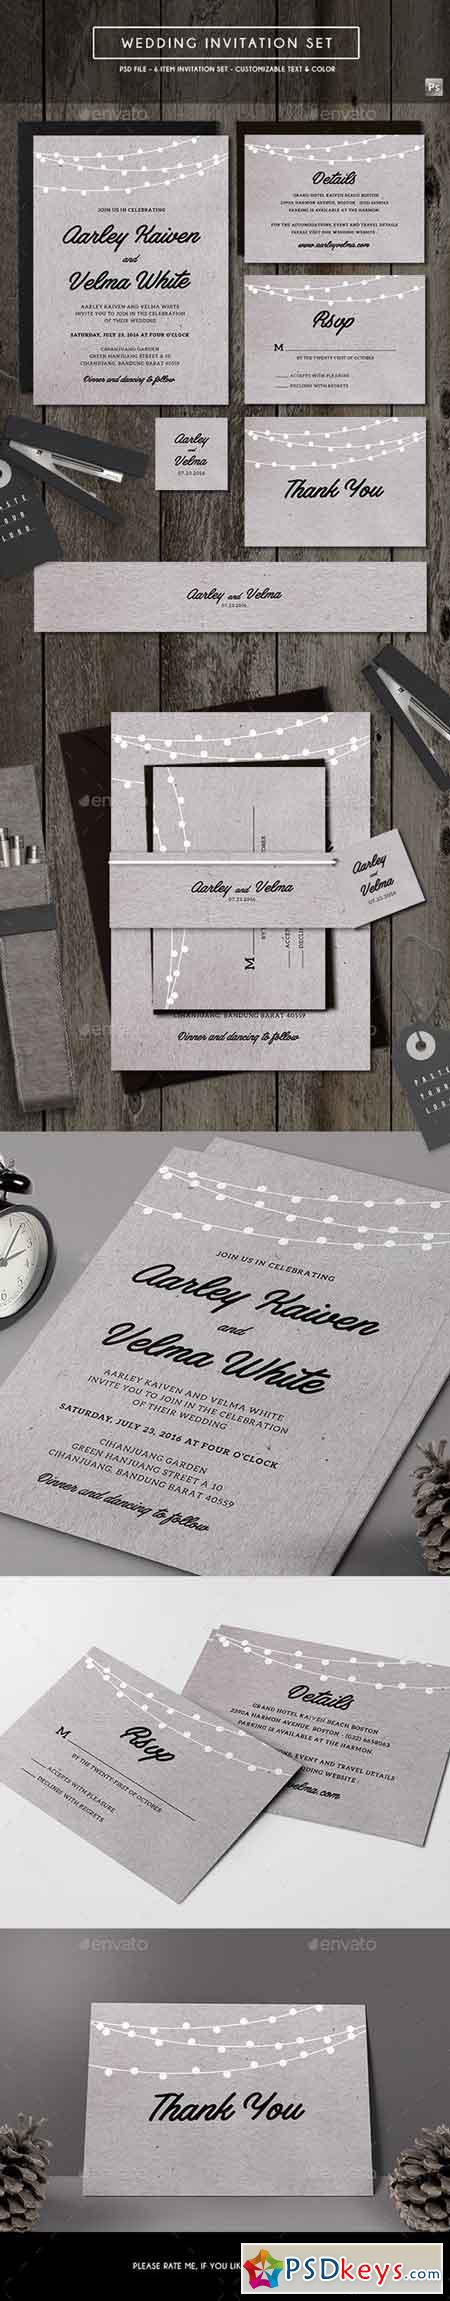 Wedding Invitation 19630705